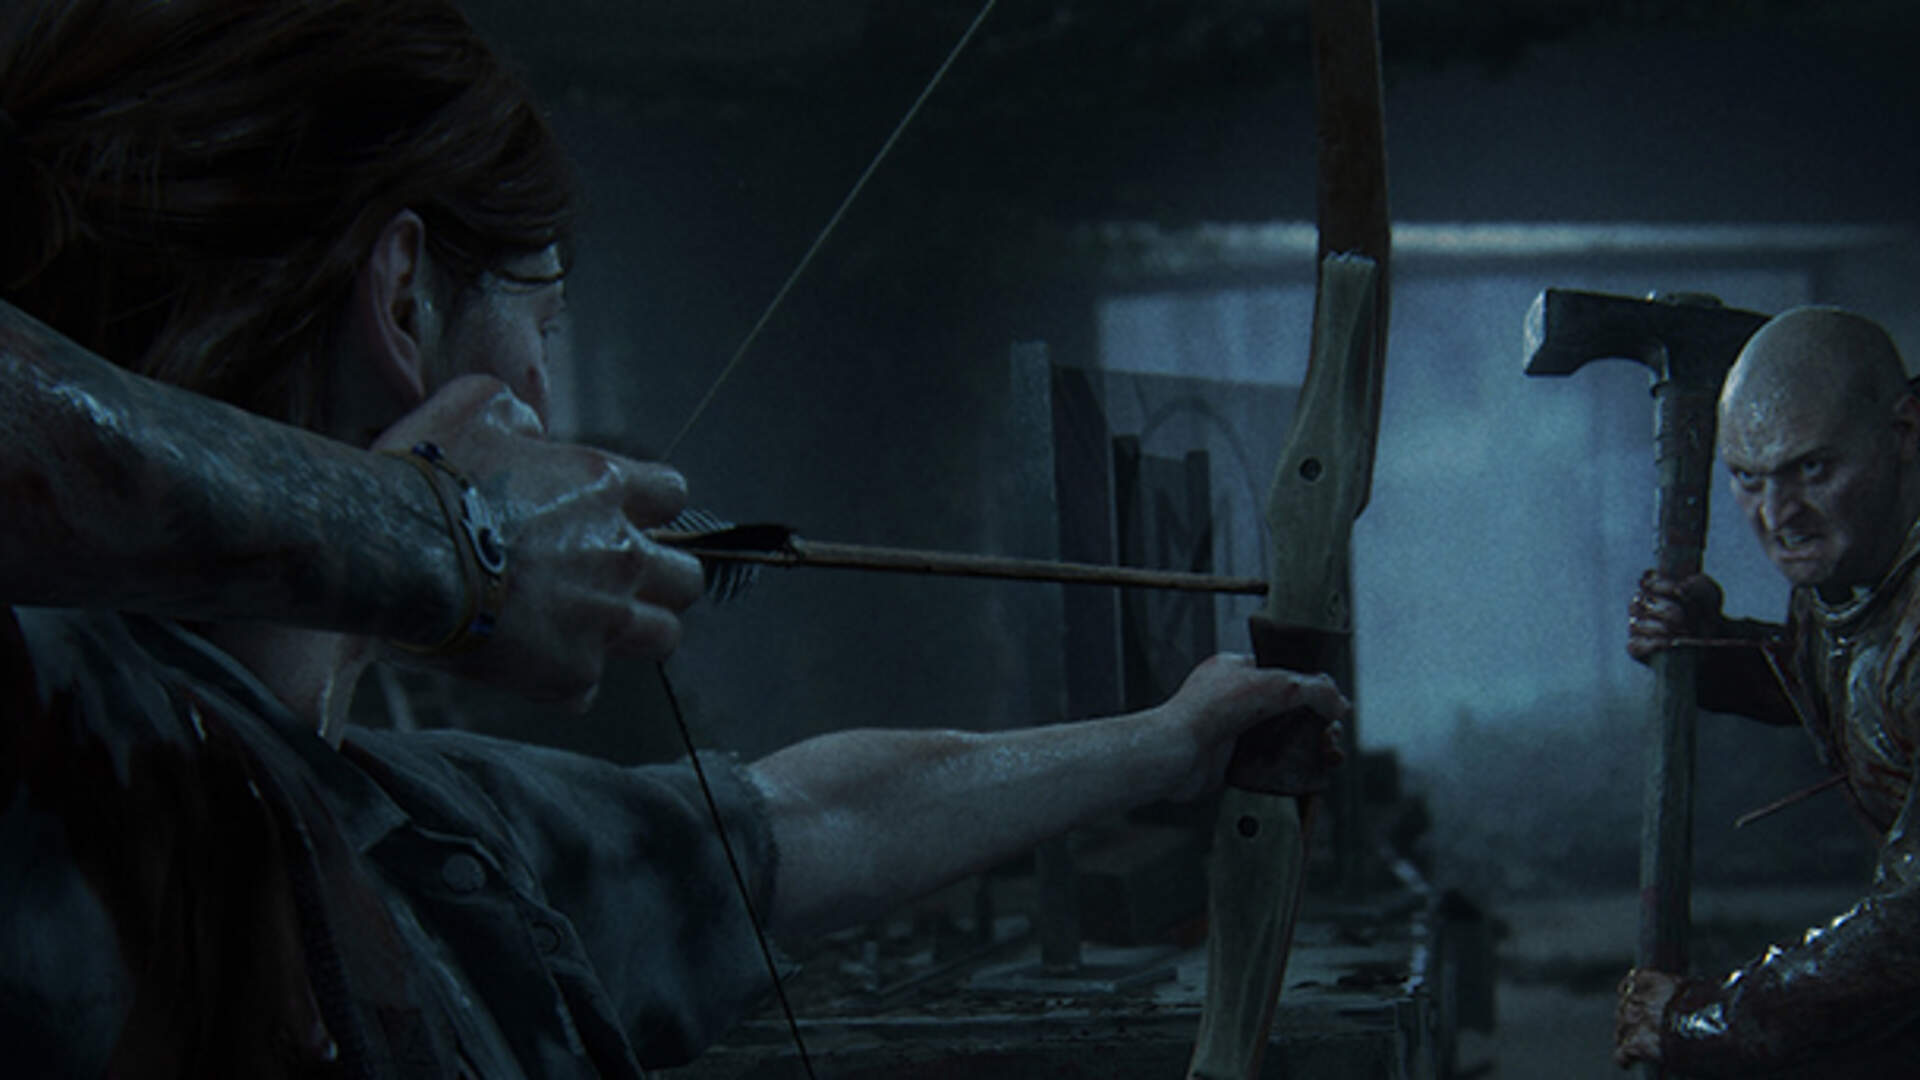 Ellie Will be the Only Playable Character in The Last of Us: Part 2, Naughty Dog Says